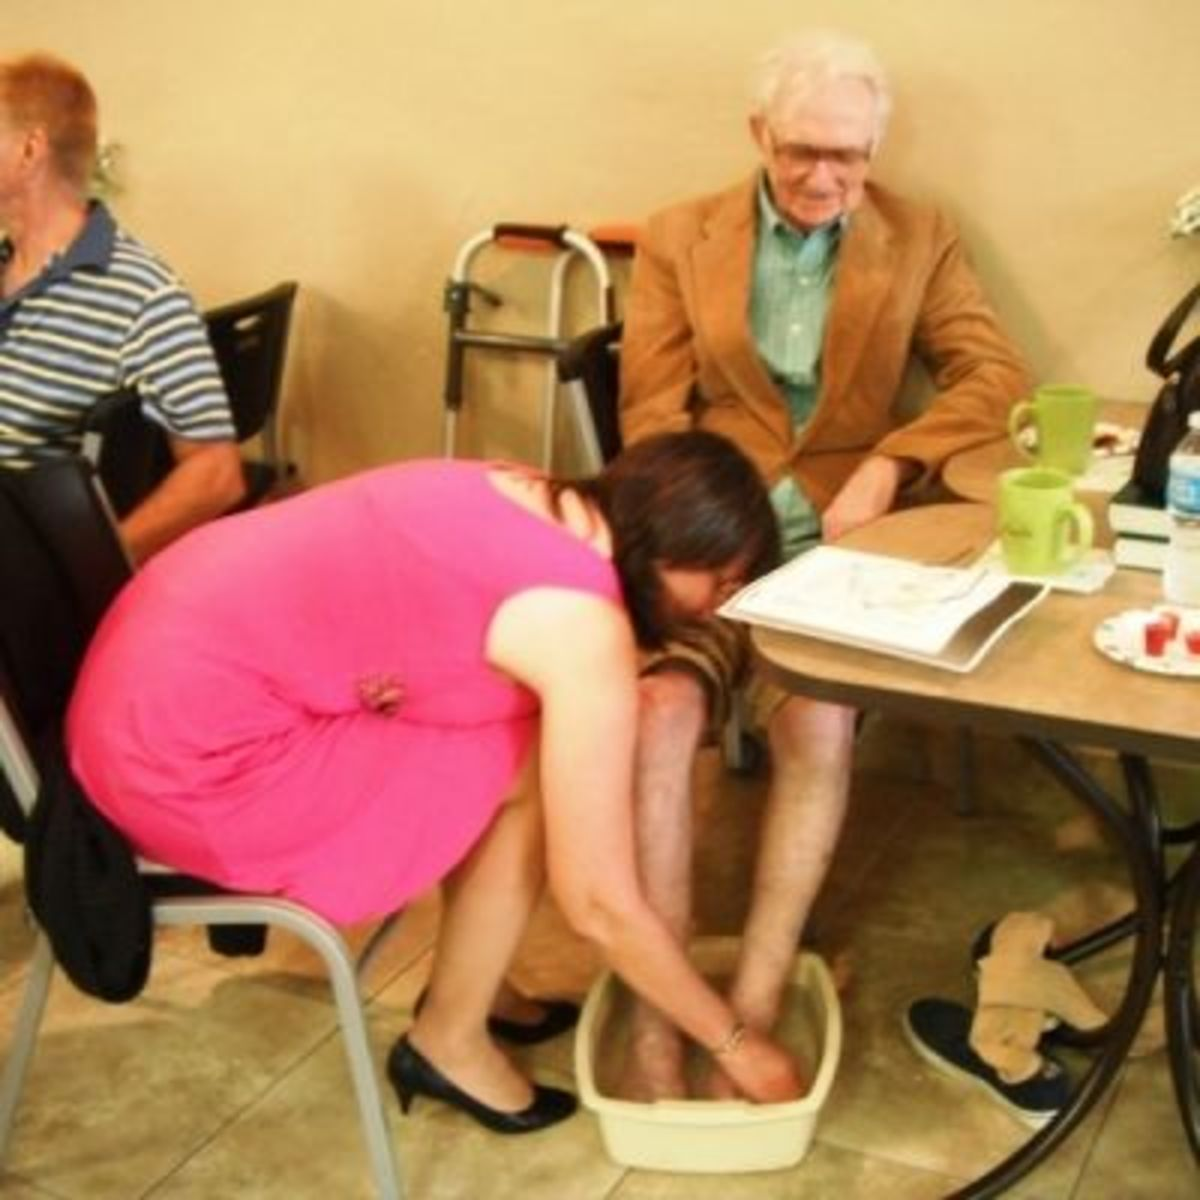 Toni washing her 90-yr-old Dad's feet at Love Feast 2013